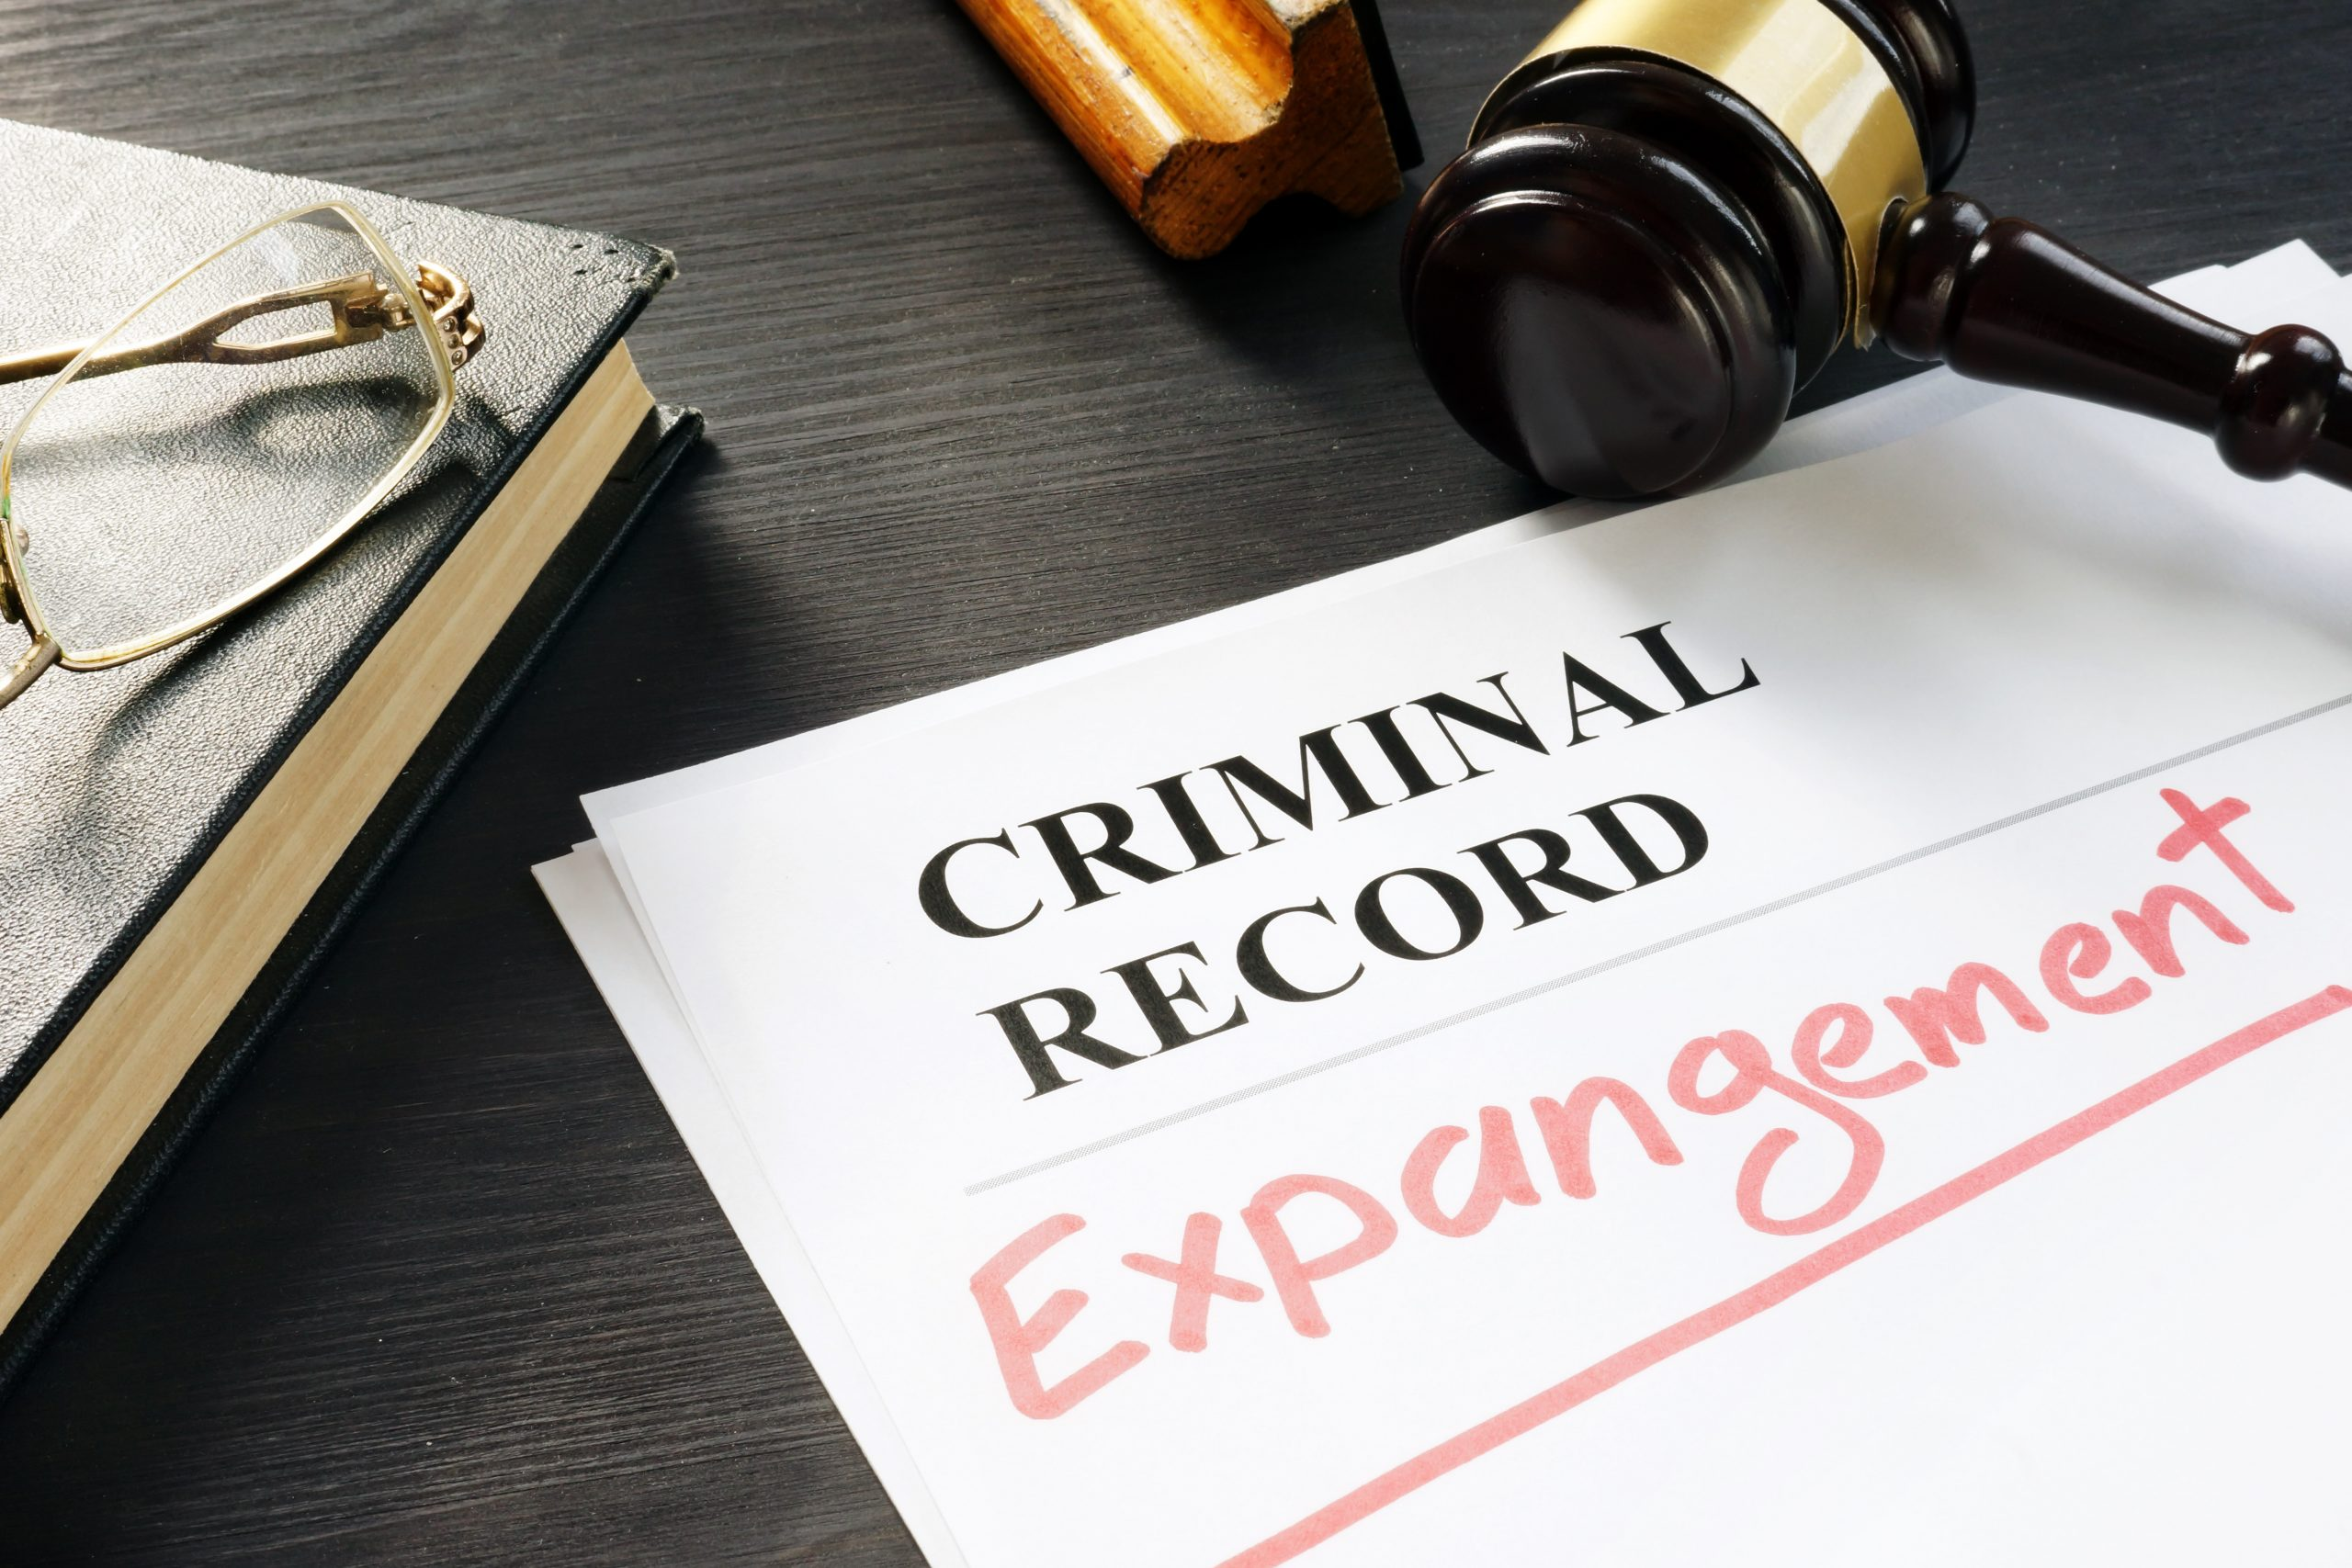 Expunction? Or, is it Expungement? Same thing and you should look into it